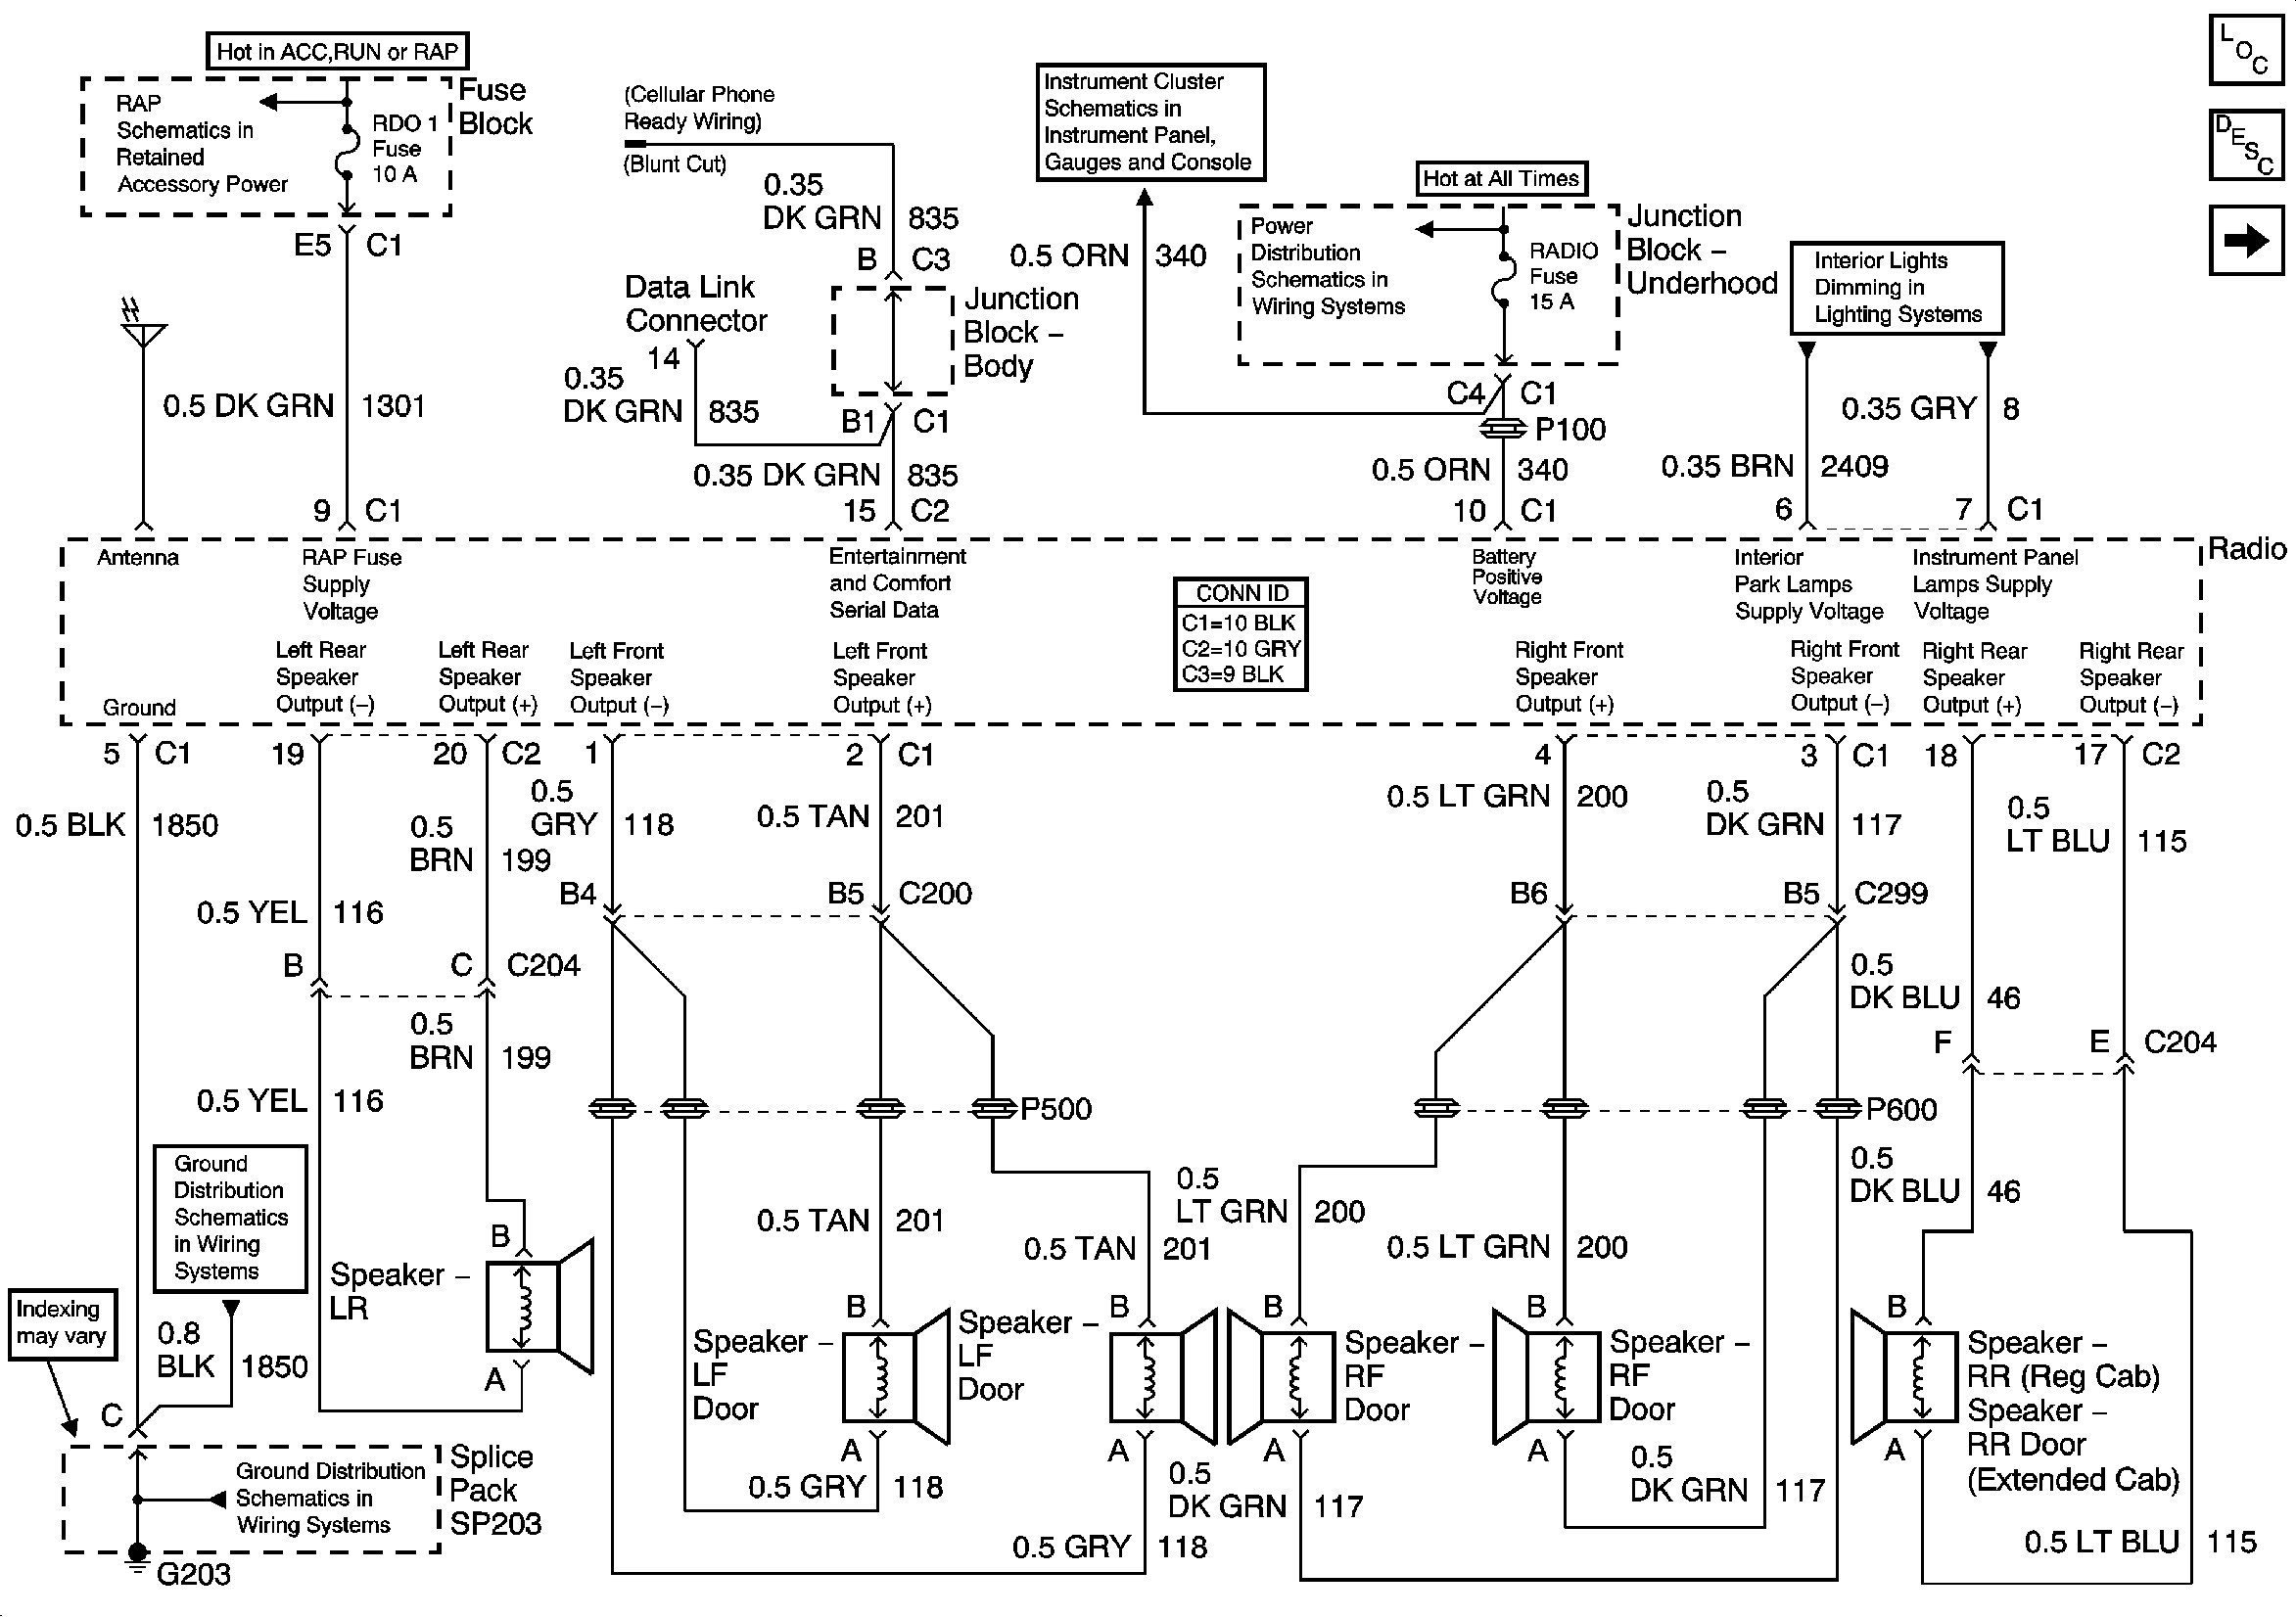 969A3 2001 Chevy Tahoe Wiring Diagram Radio | Digital Resources 2001 chevy tahoe factory amp location Digital Resources